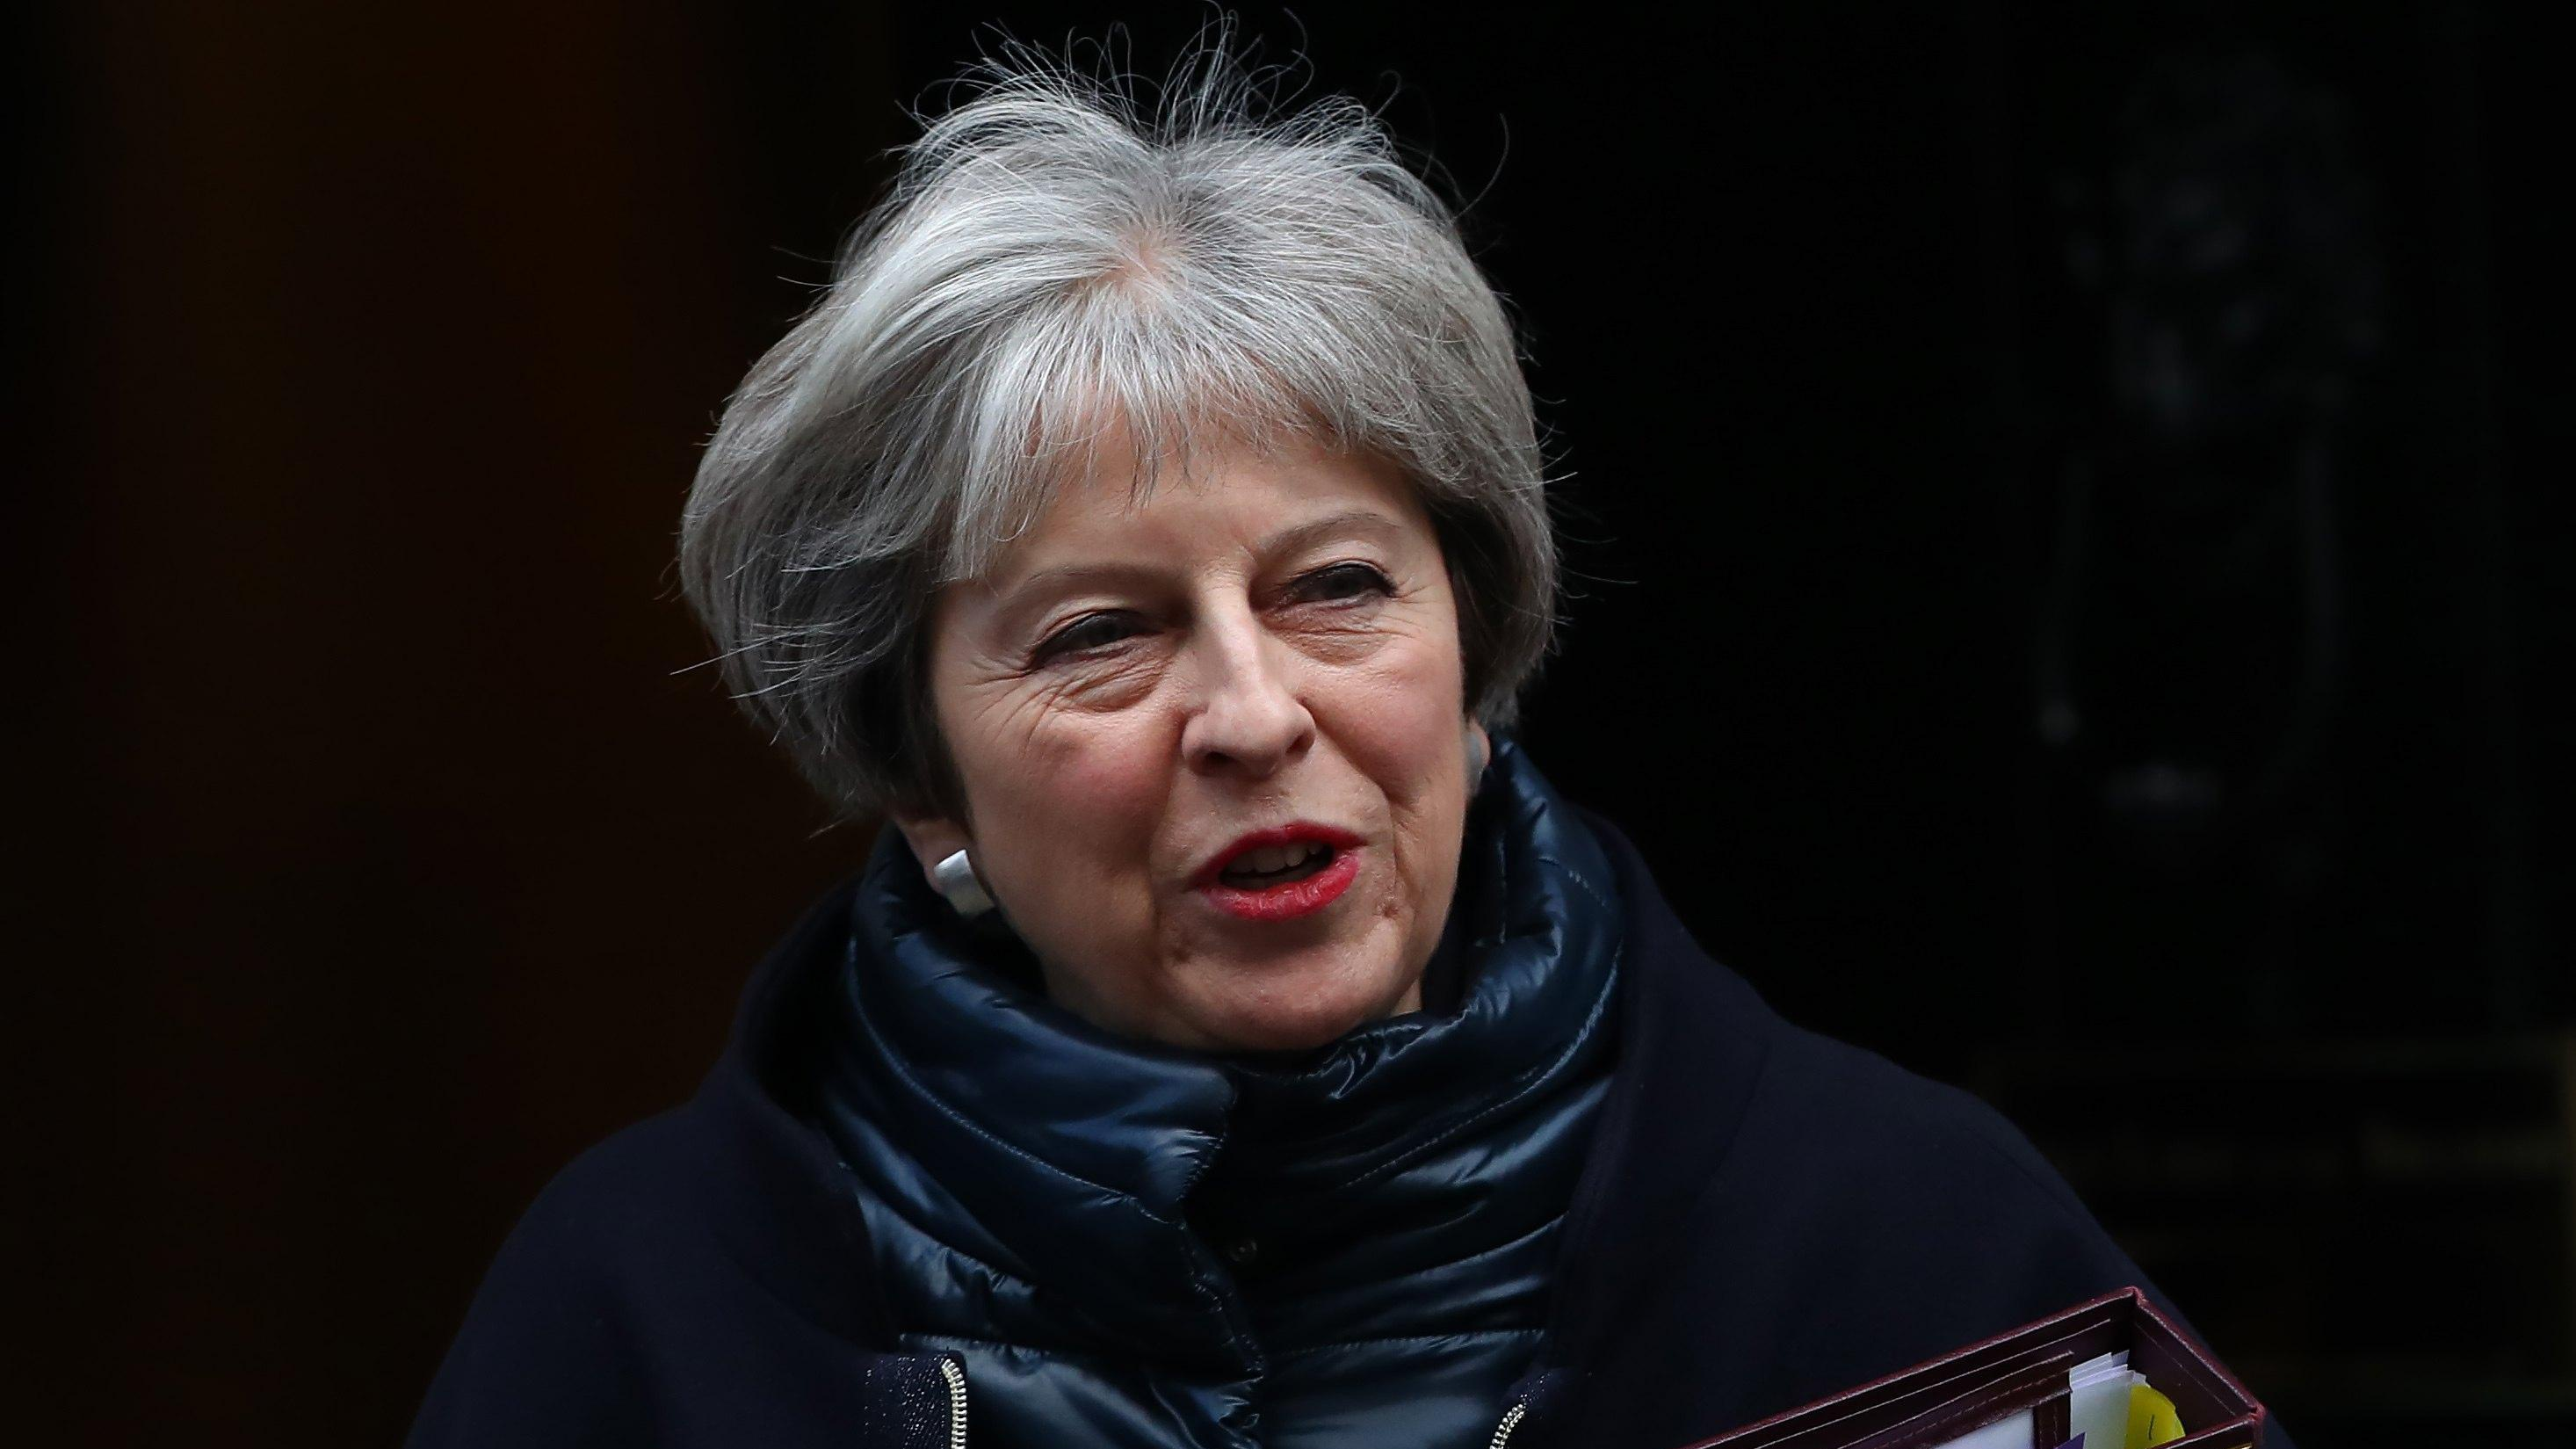 Brexit: May esclude nuovo referendum